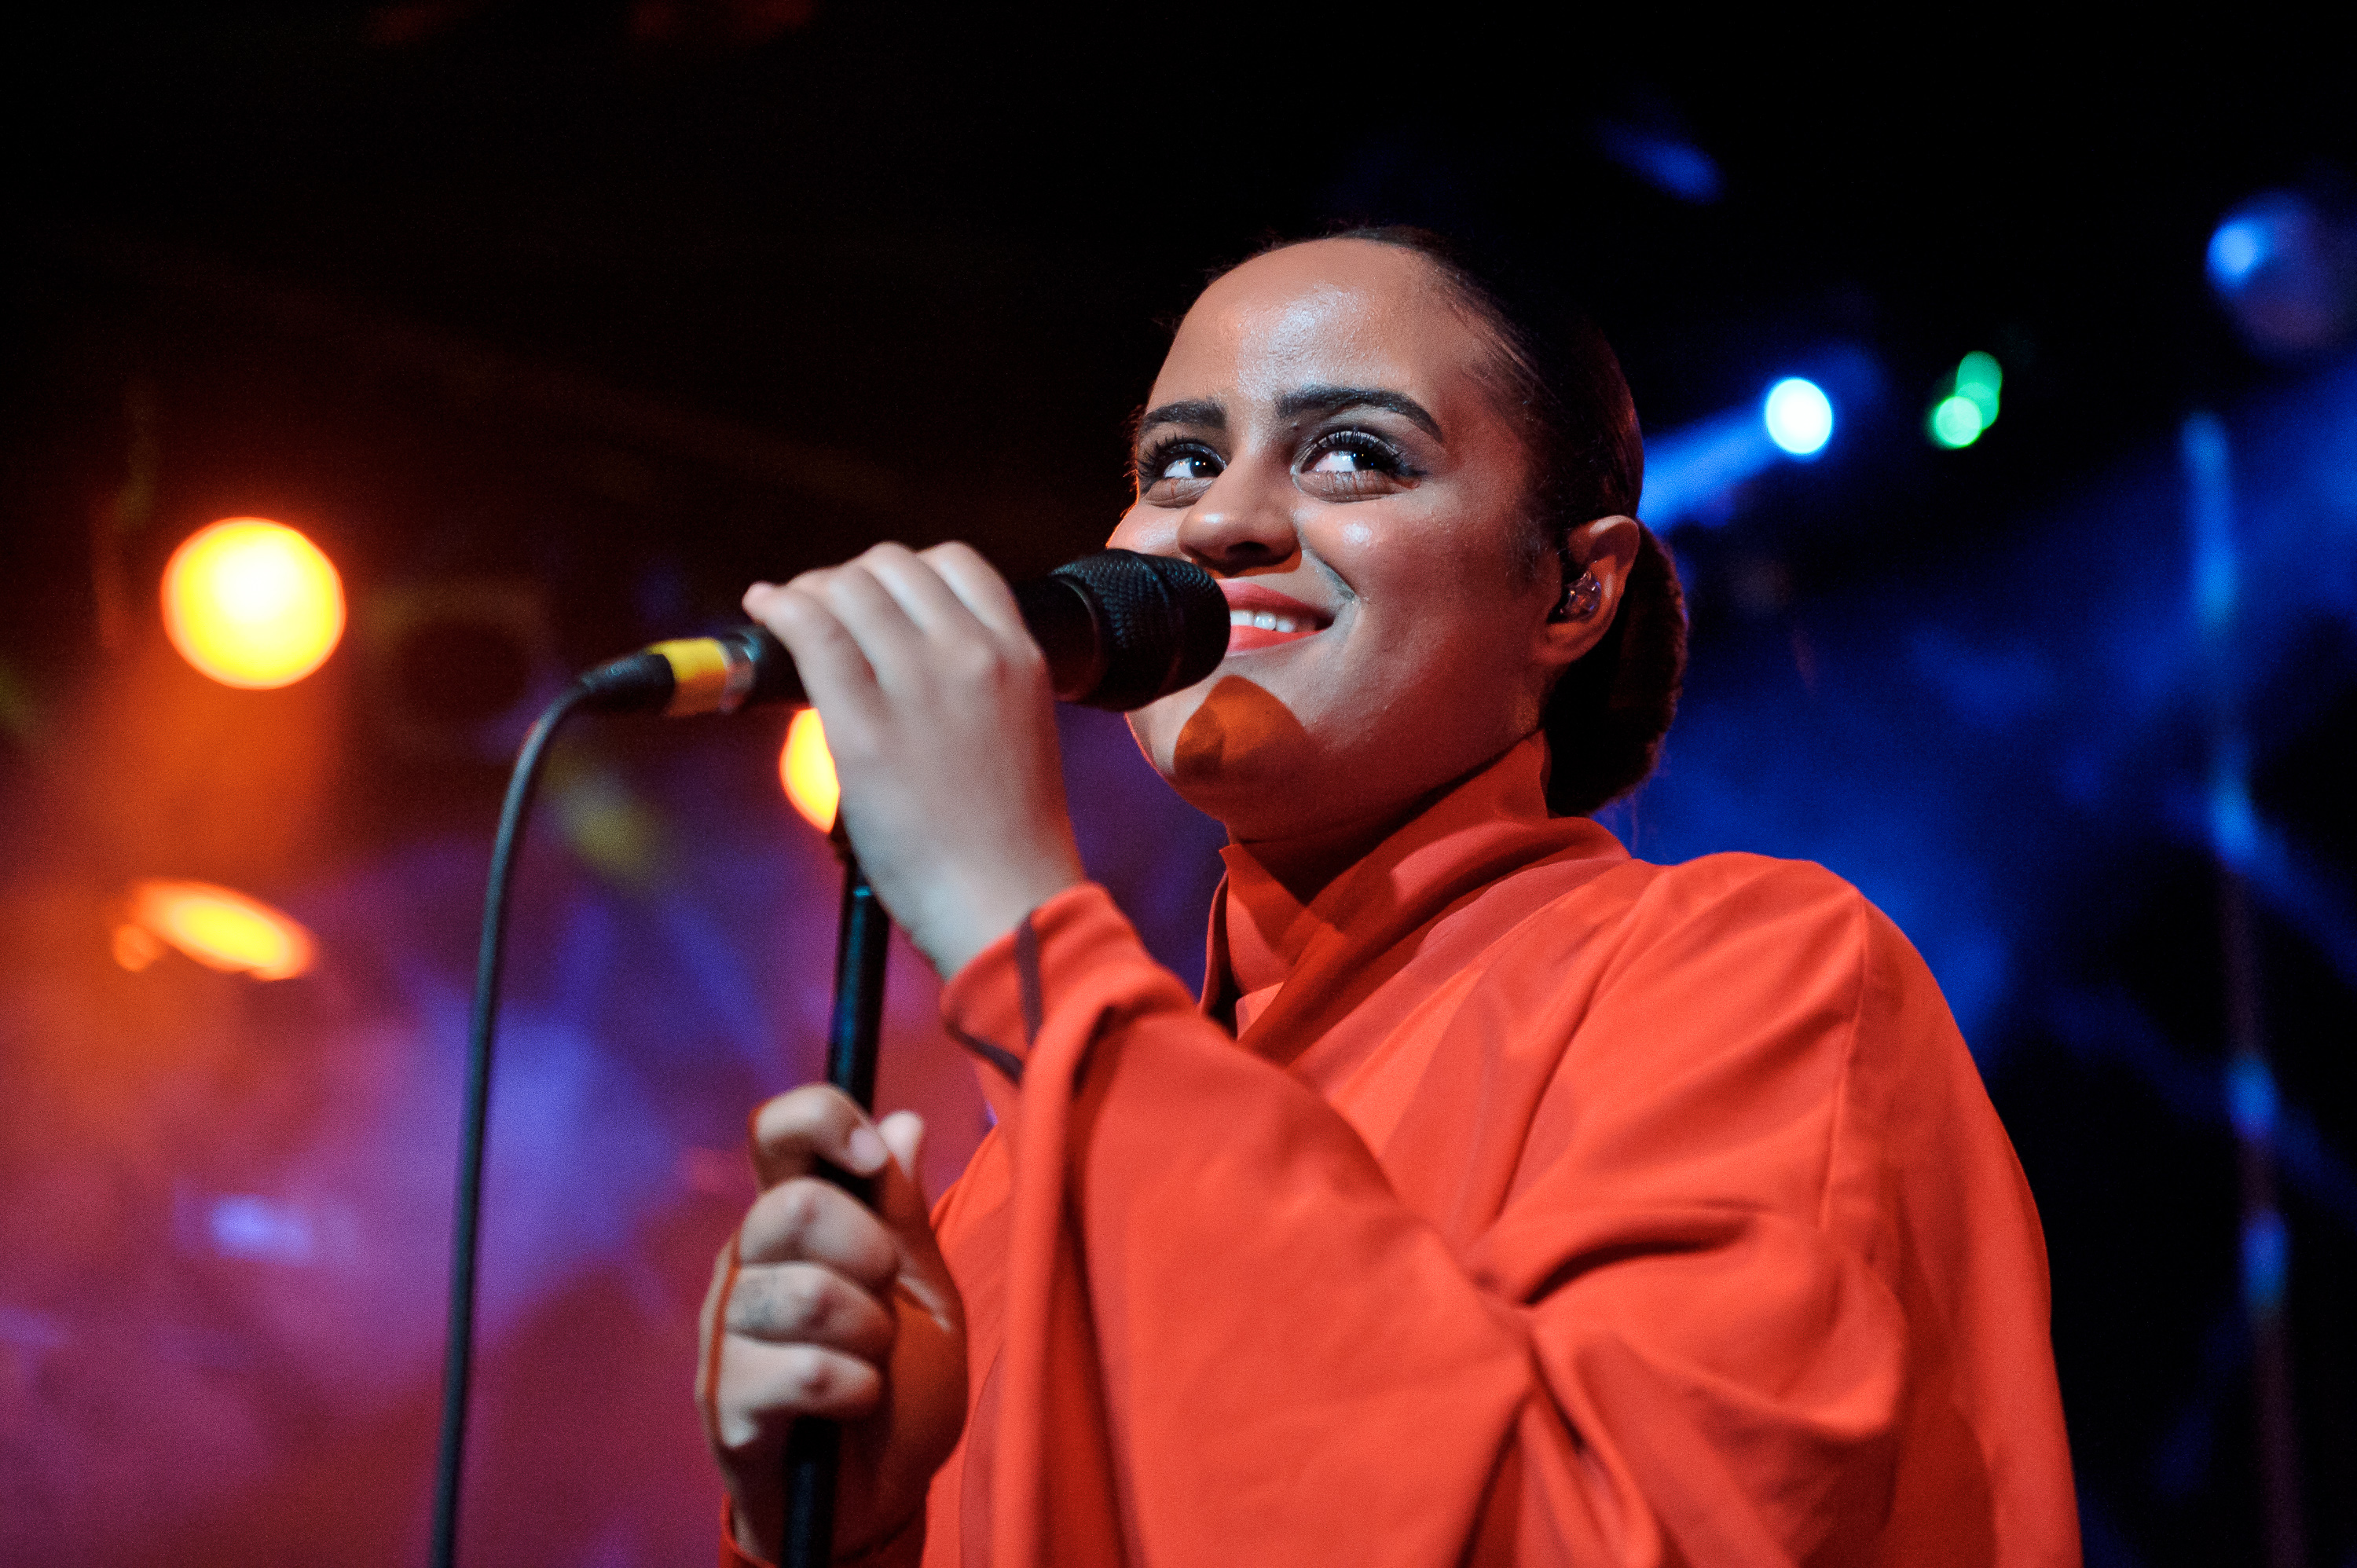 Seinabo Sey performs at Scala on May 20, 2015 in London, England.